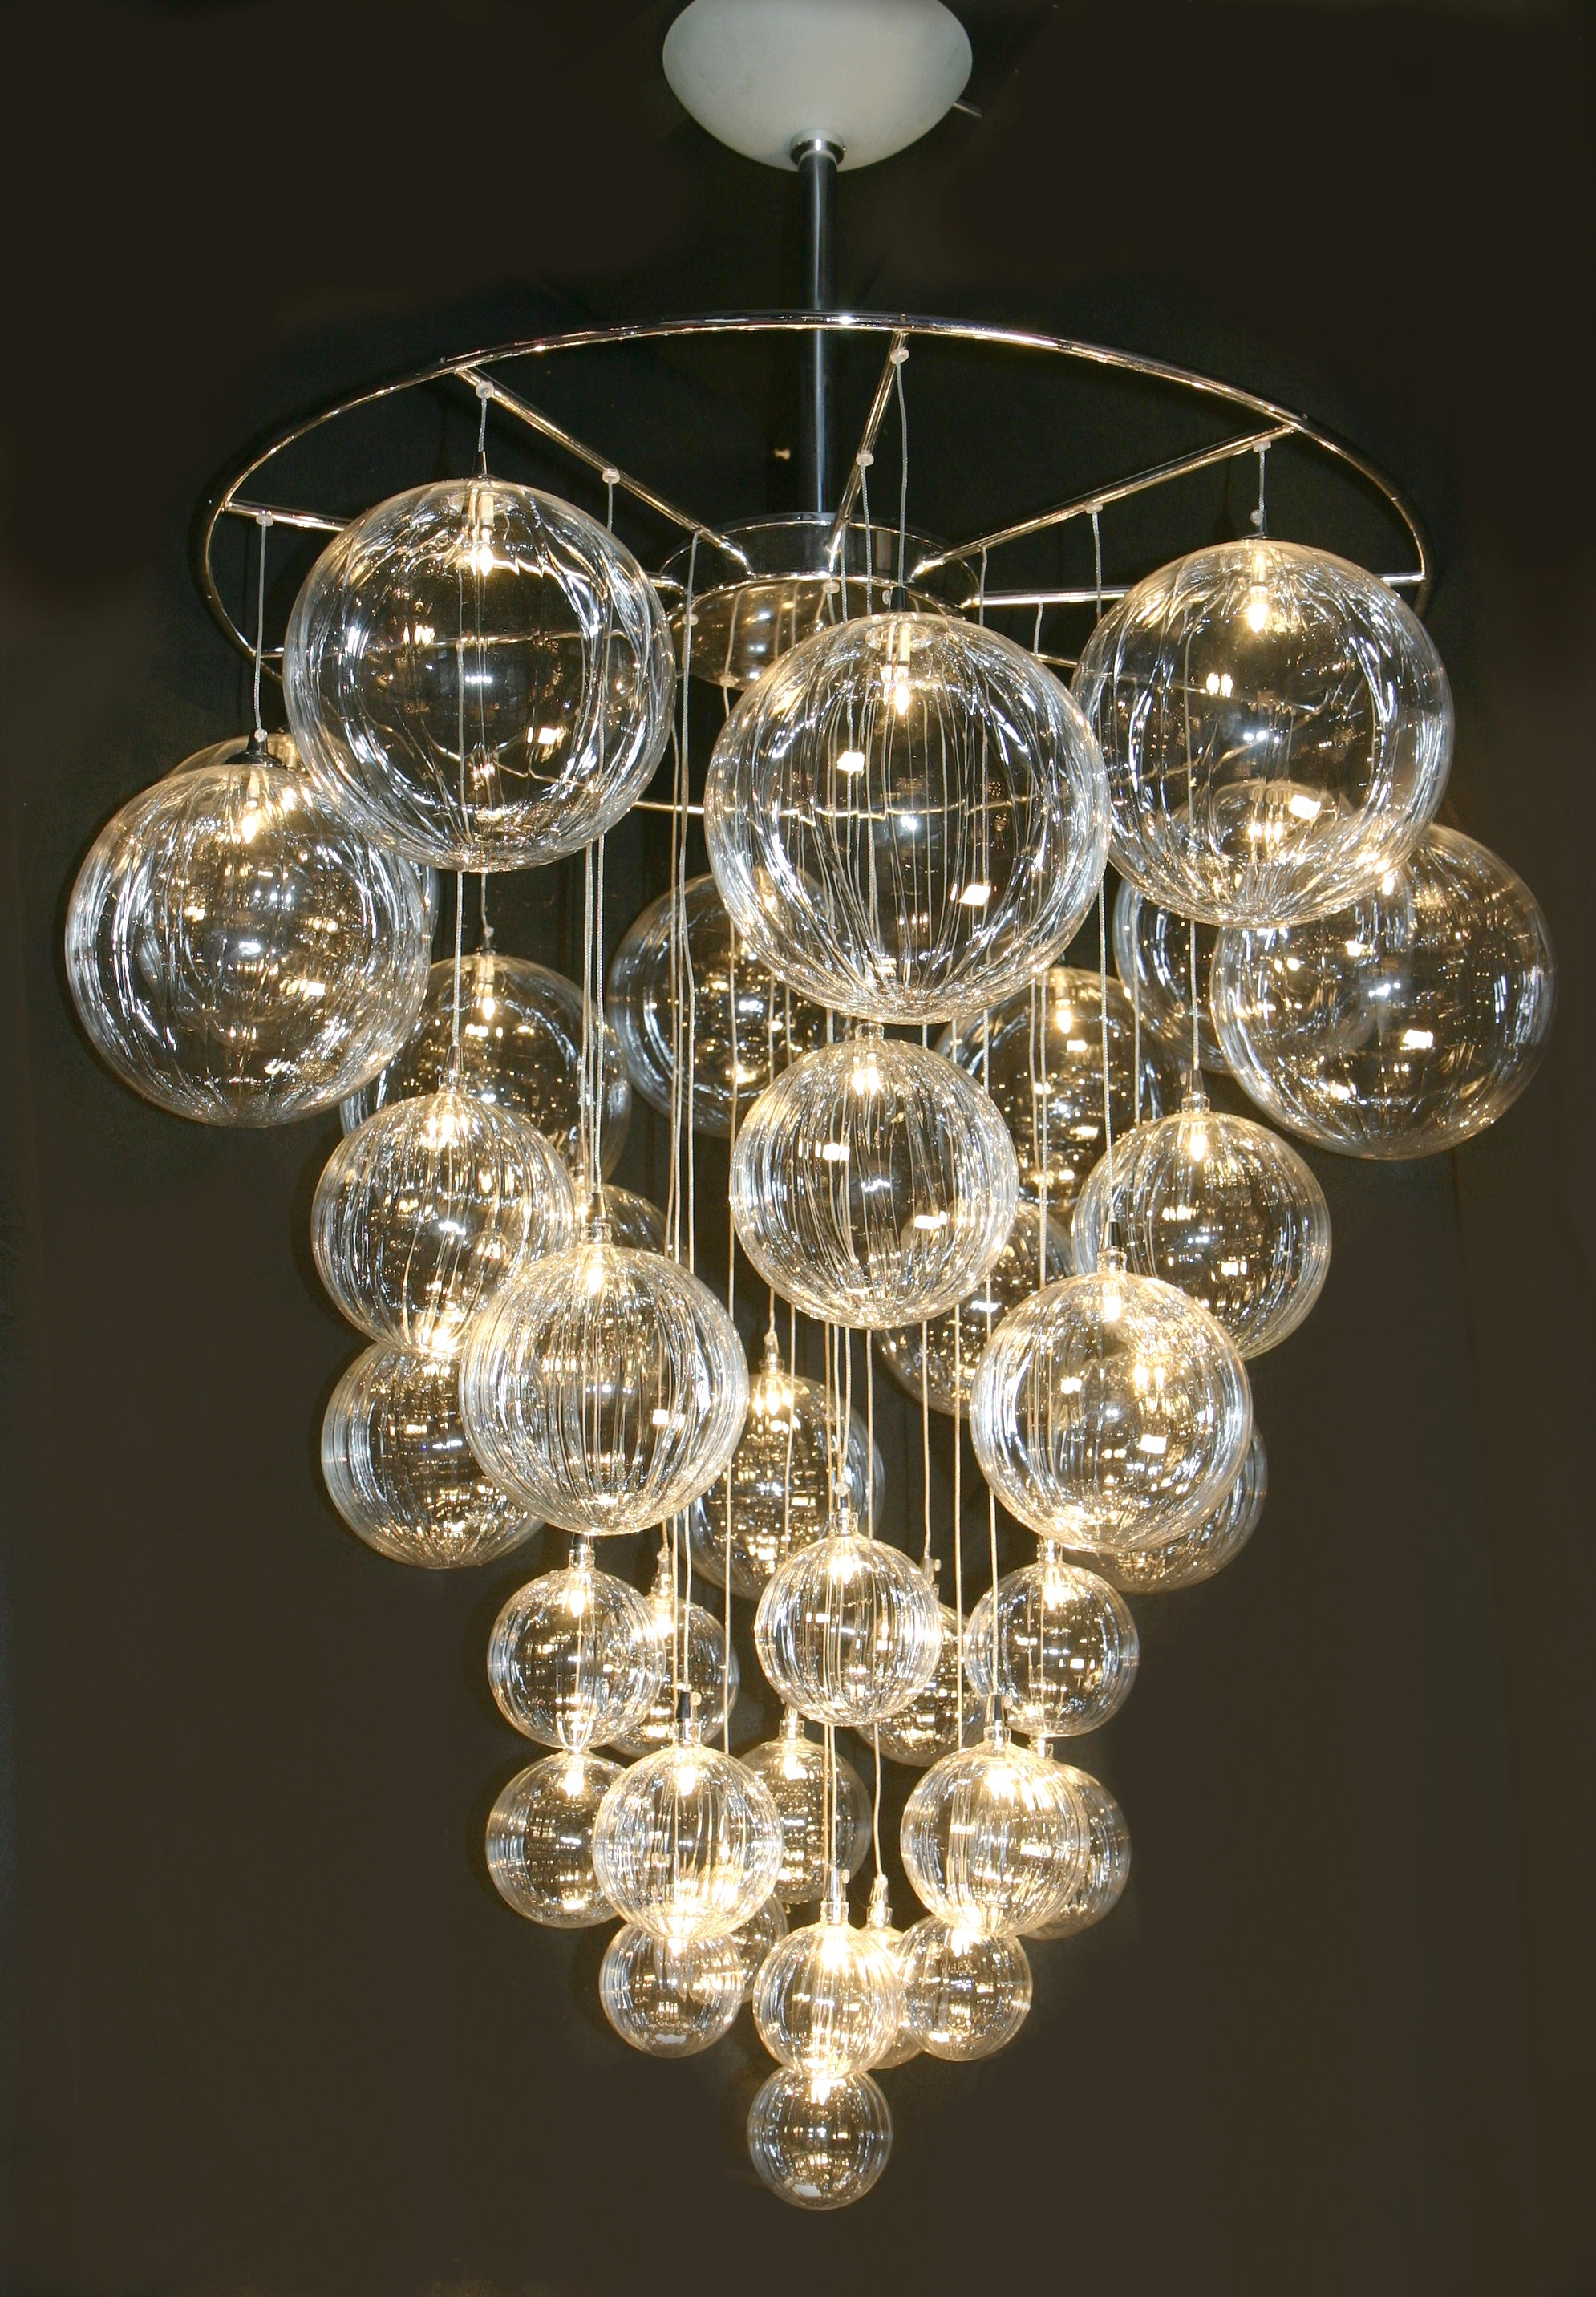 53 Modern Chandelier Lighting Chromecrystalmetal Bubble Shade In Contemporary Modern Chandelier (Image 4 of 15)